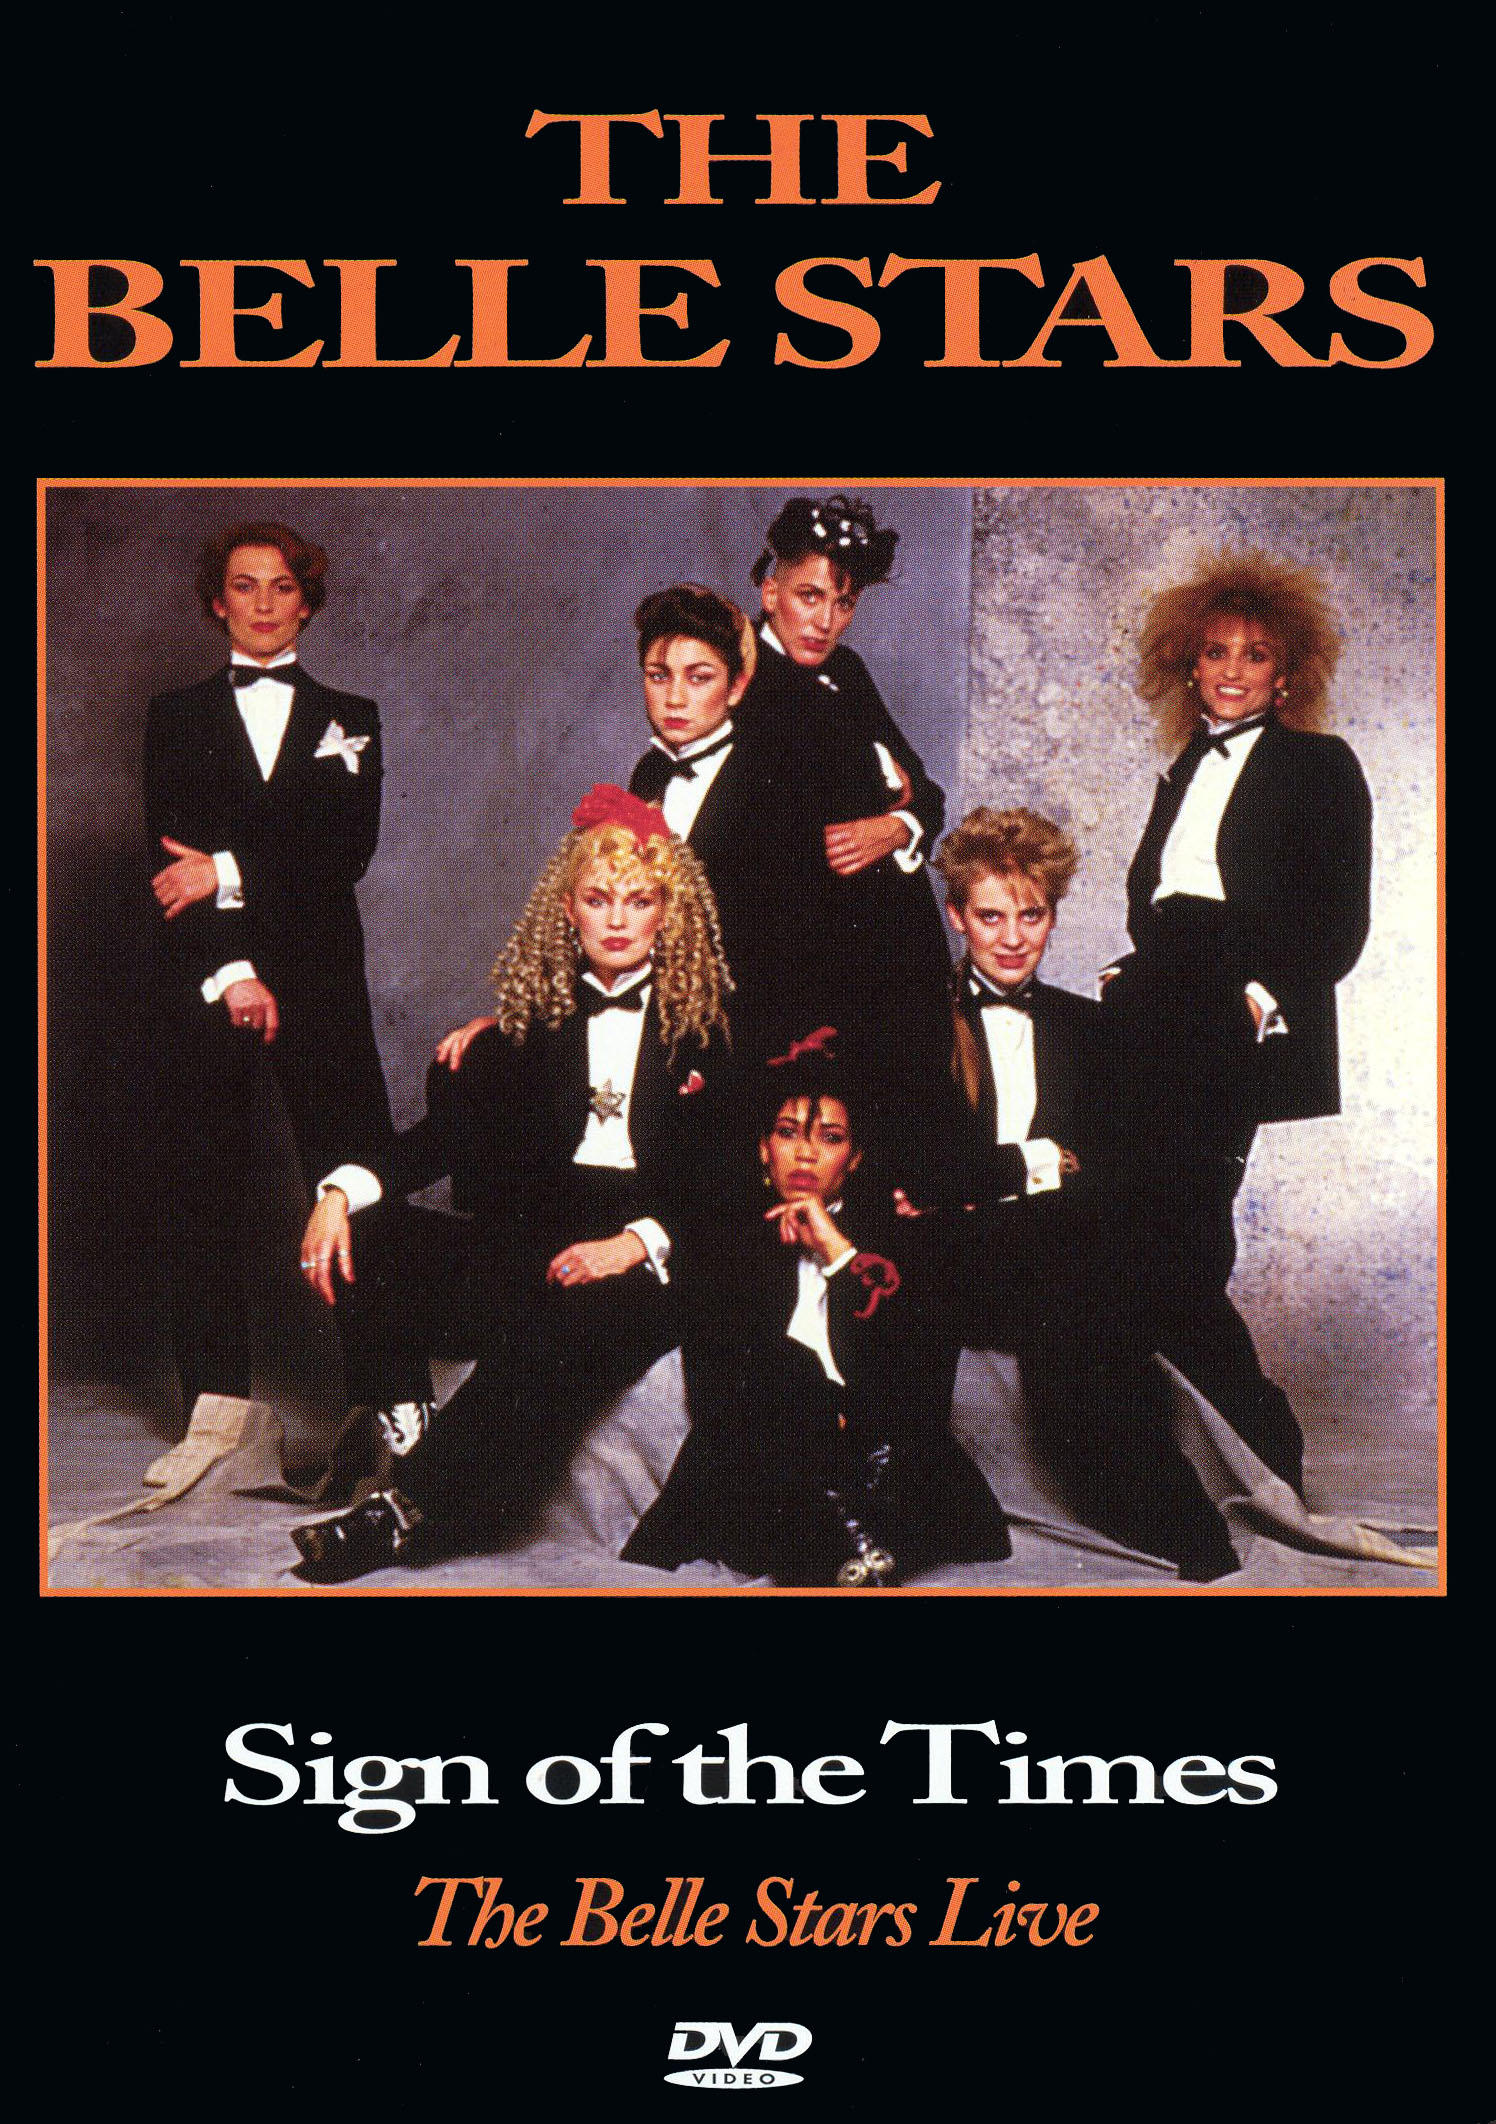 The Belle Stars: Sign of the Times - The Belle Stars Live